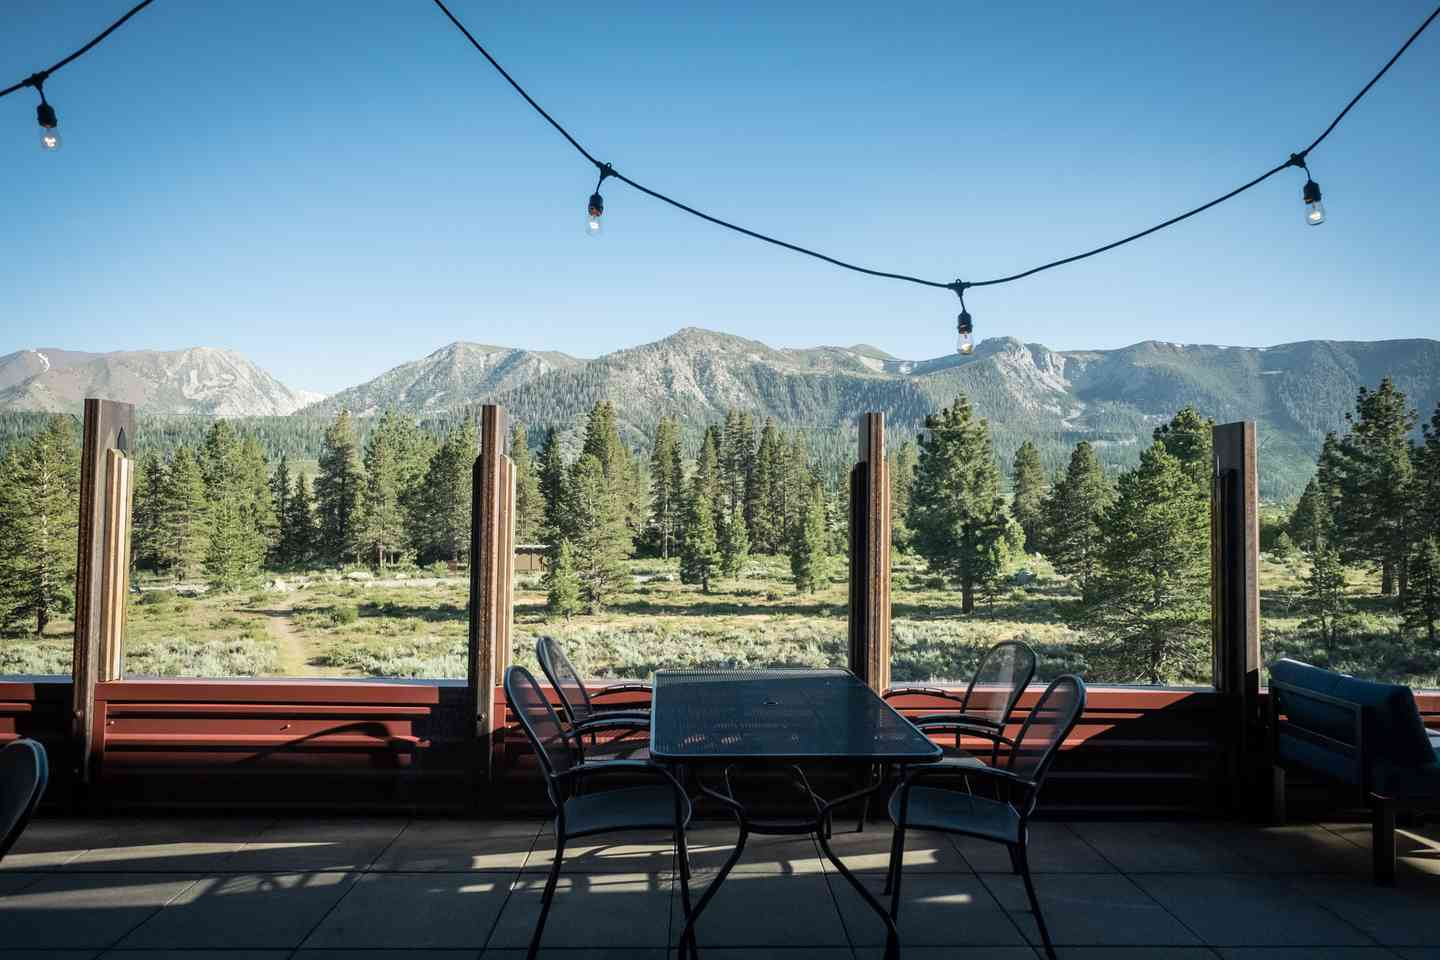 Patio seating area with a mountain view